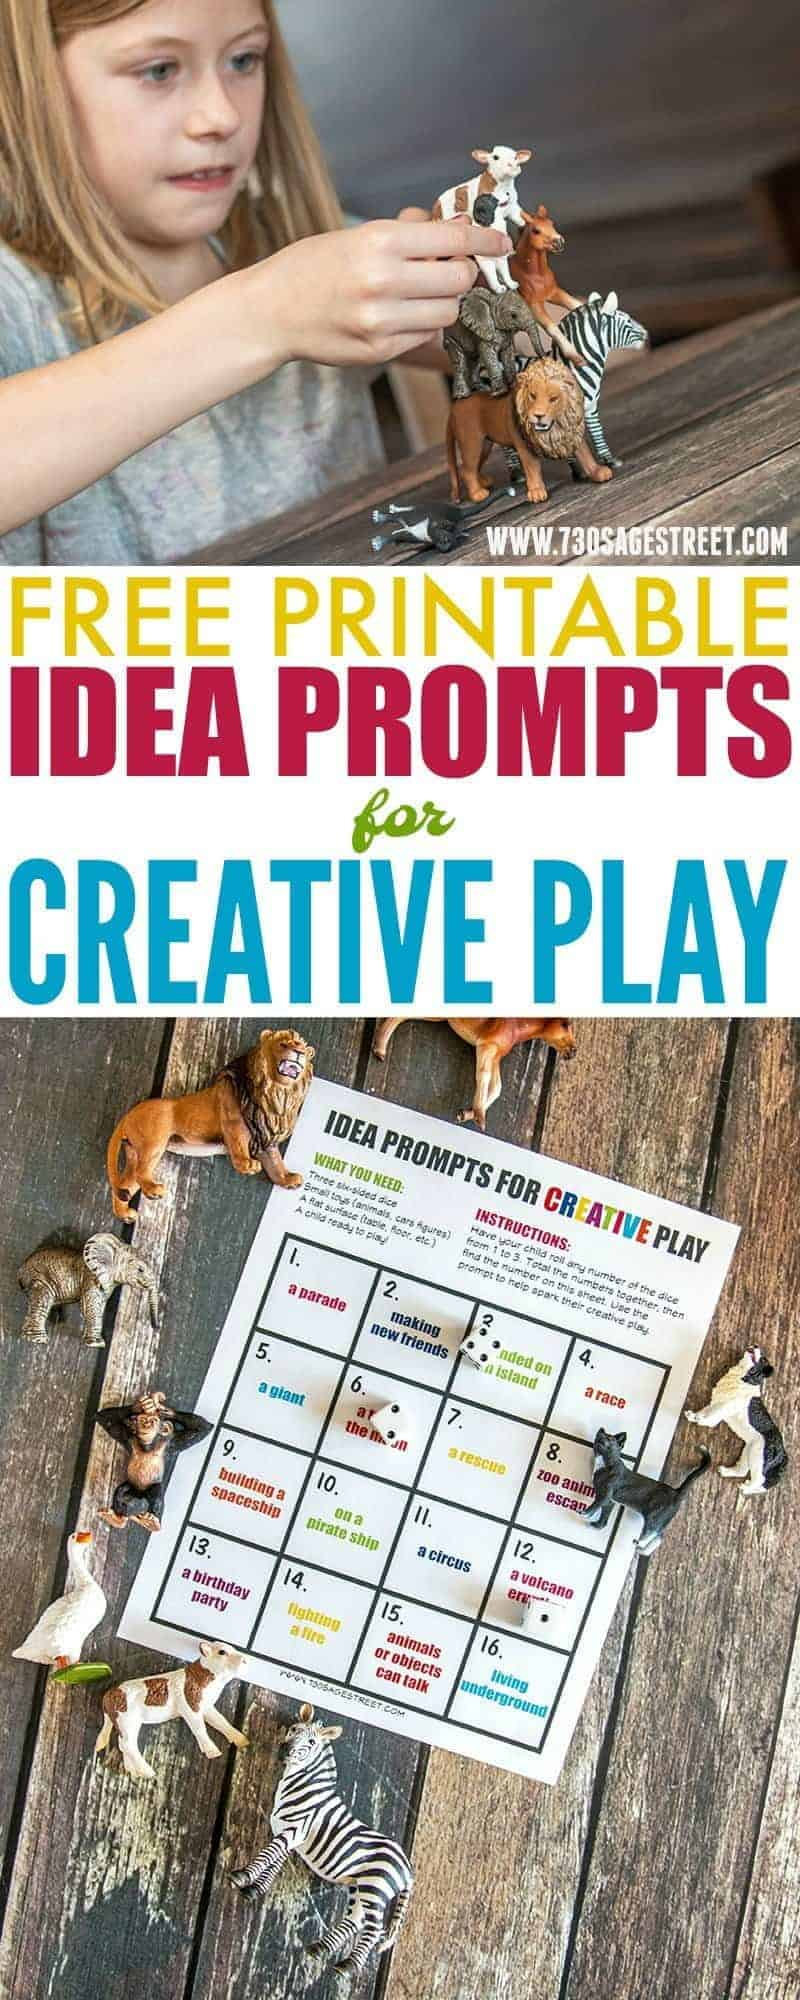 Free printable idea prompts activity for creative play #printable #freebie #freeprintable #freedownload #download #downloadandprint #creativity #play #kids #kidsactivities